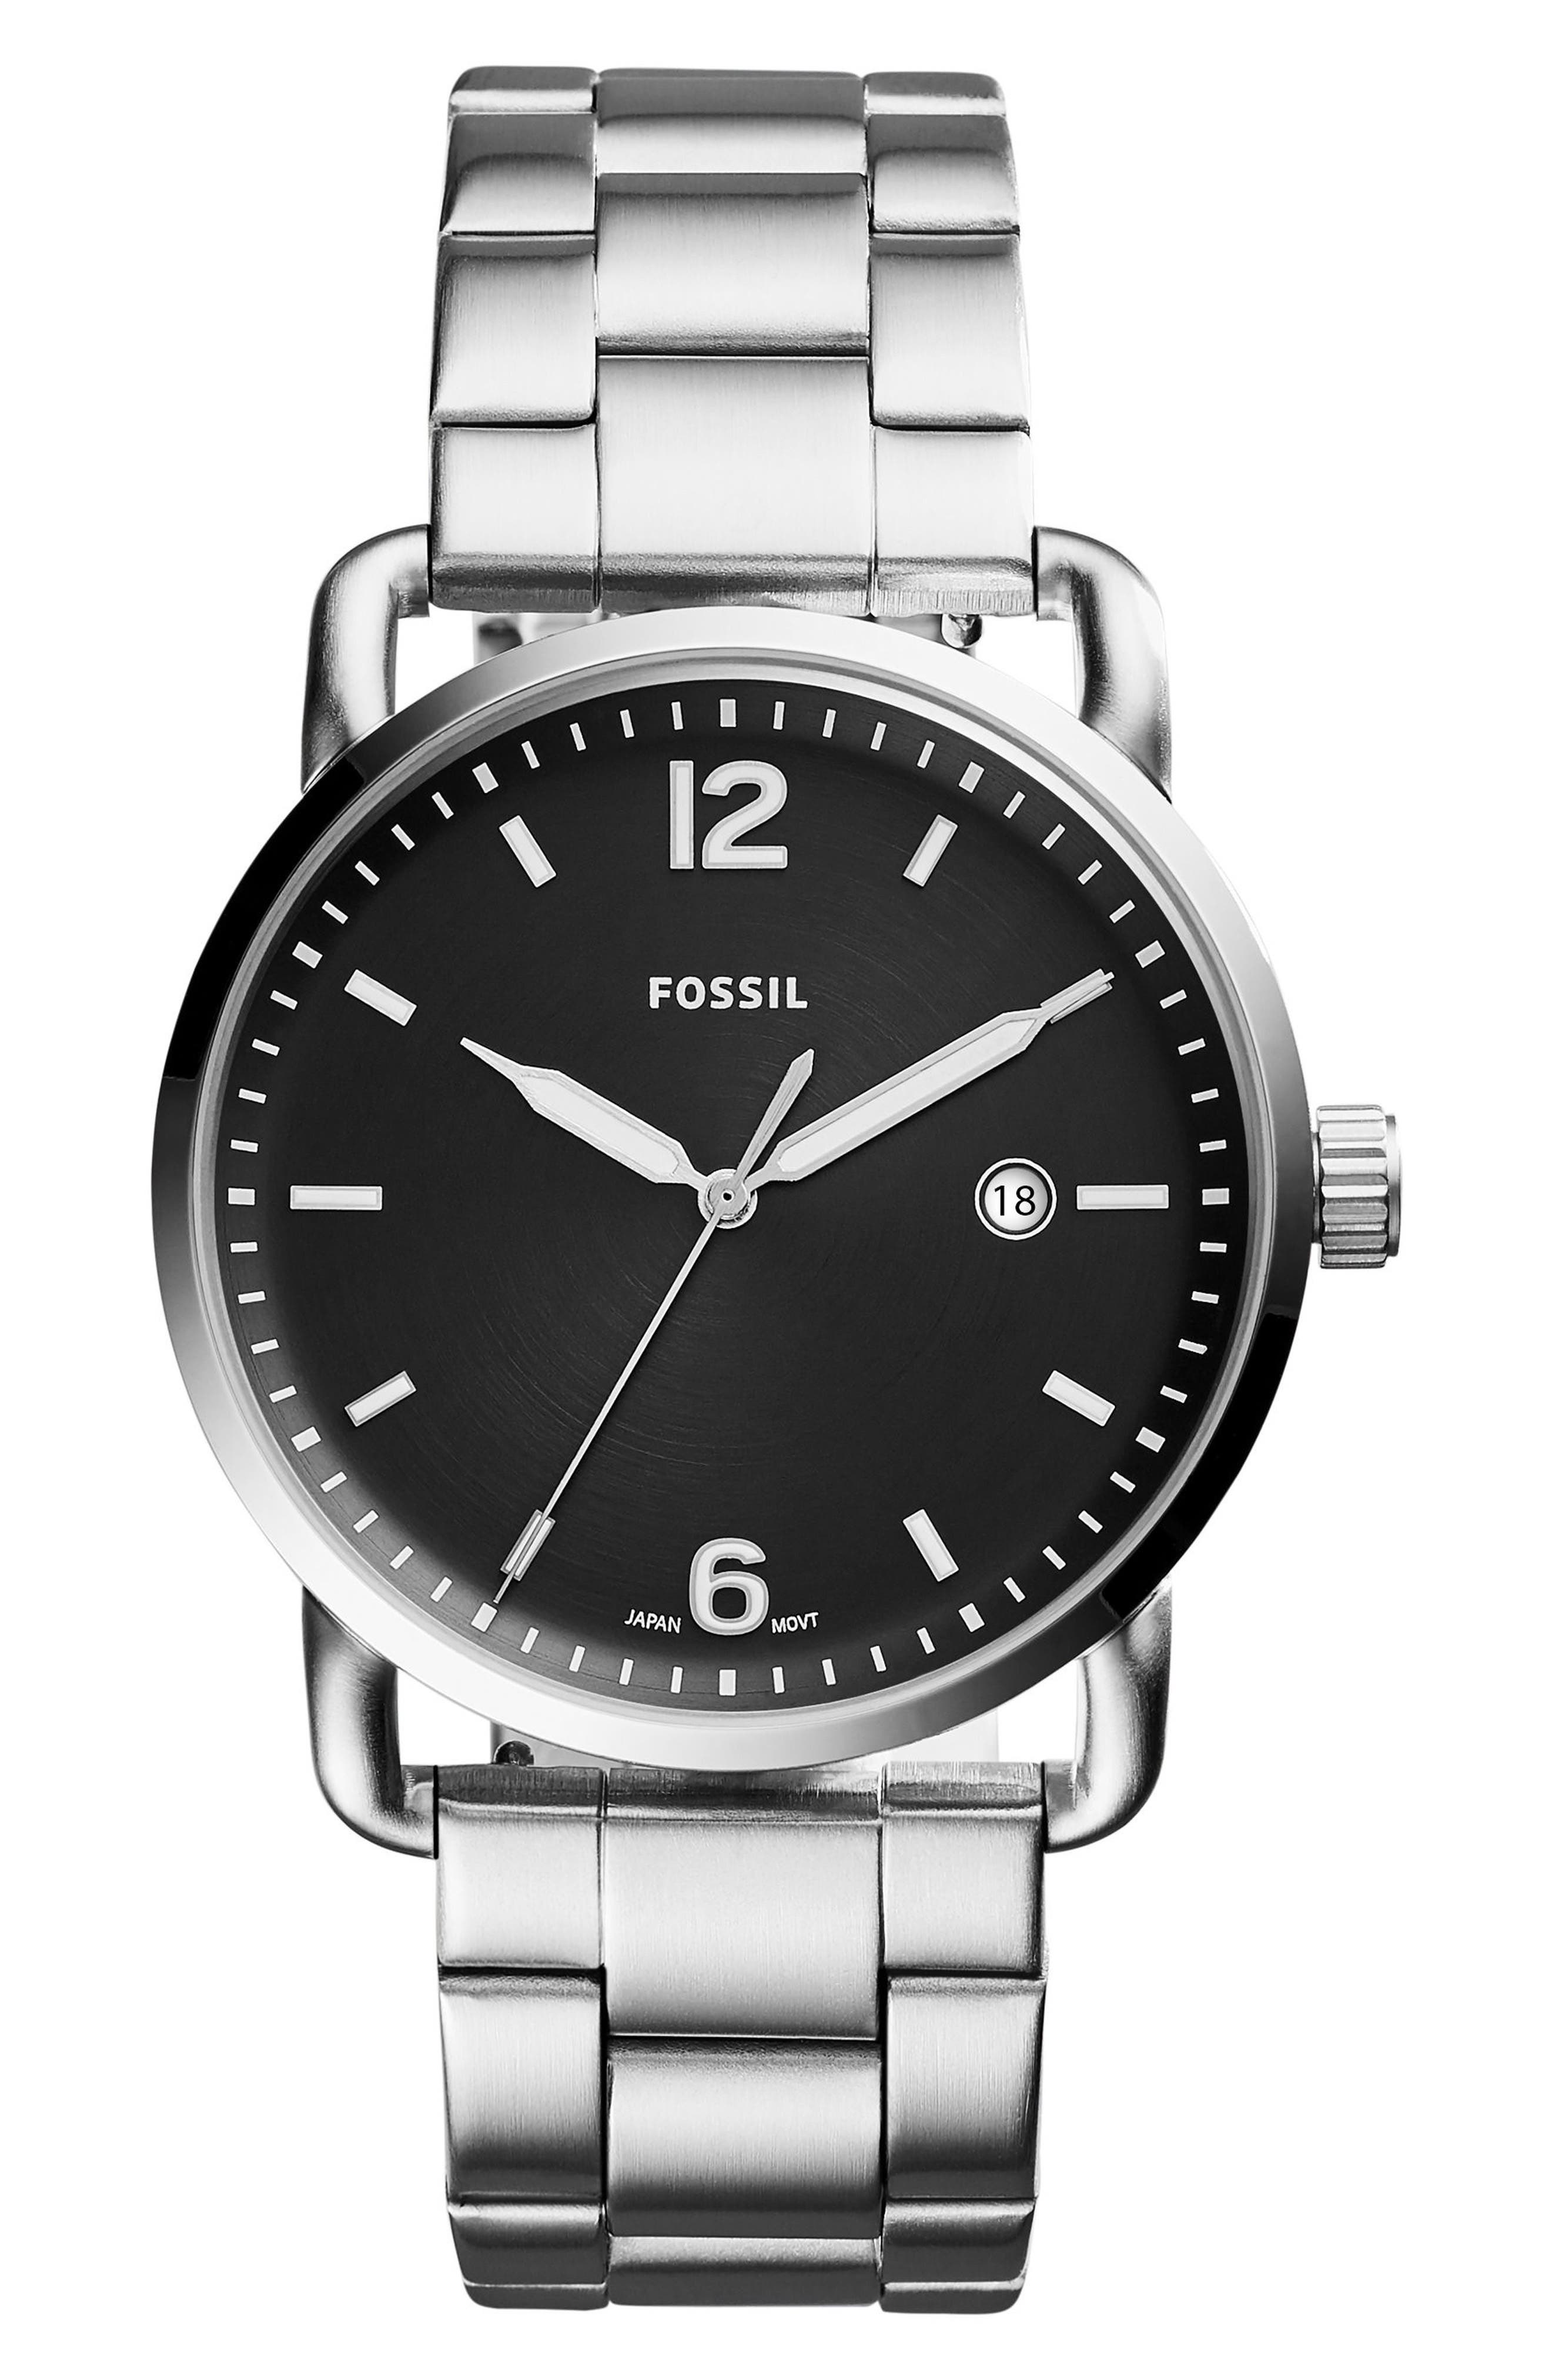 Main Image - Fossil The Commuter Bracelet Watch, 42mm